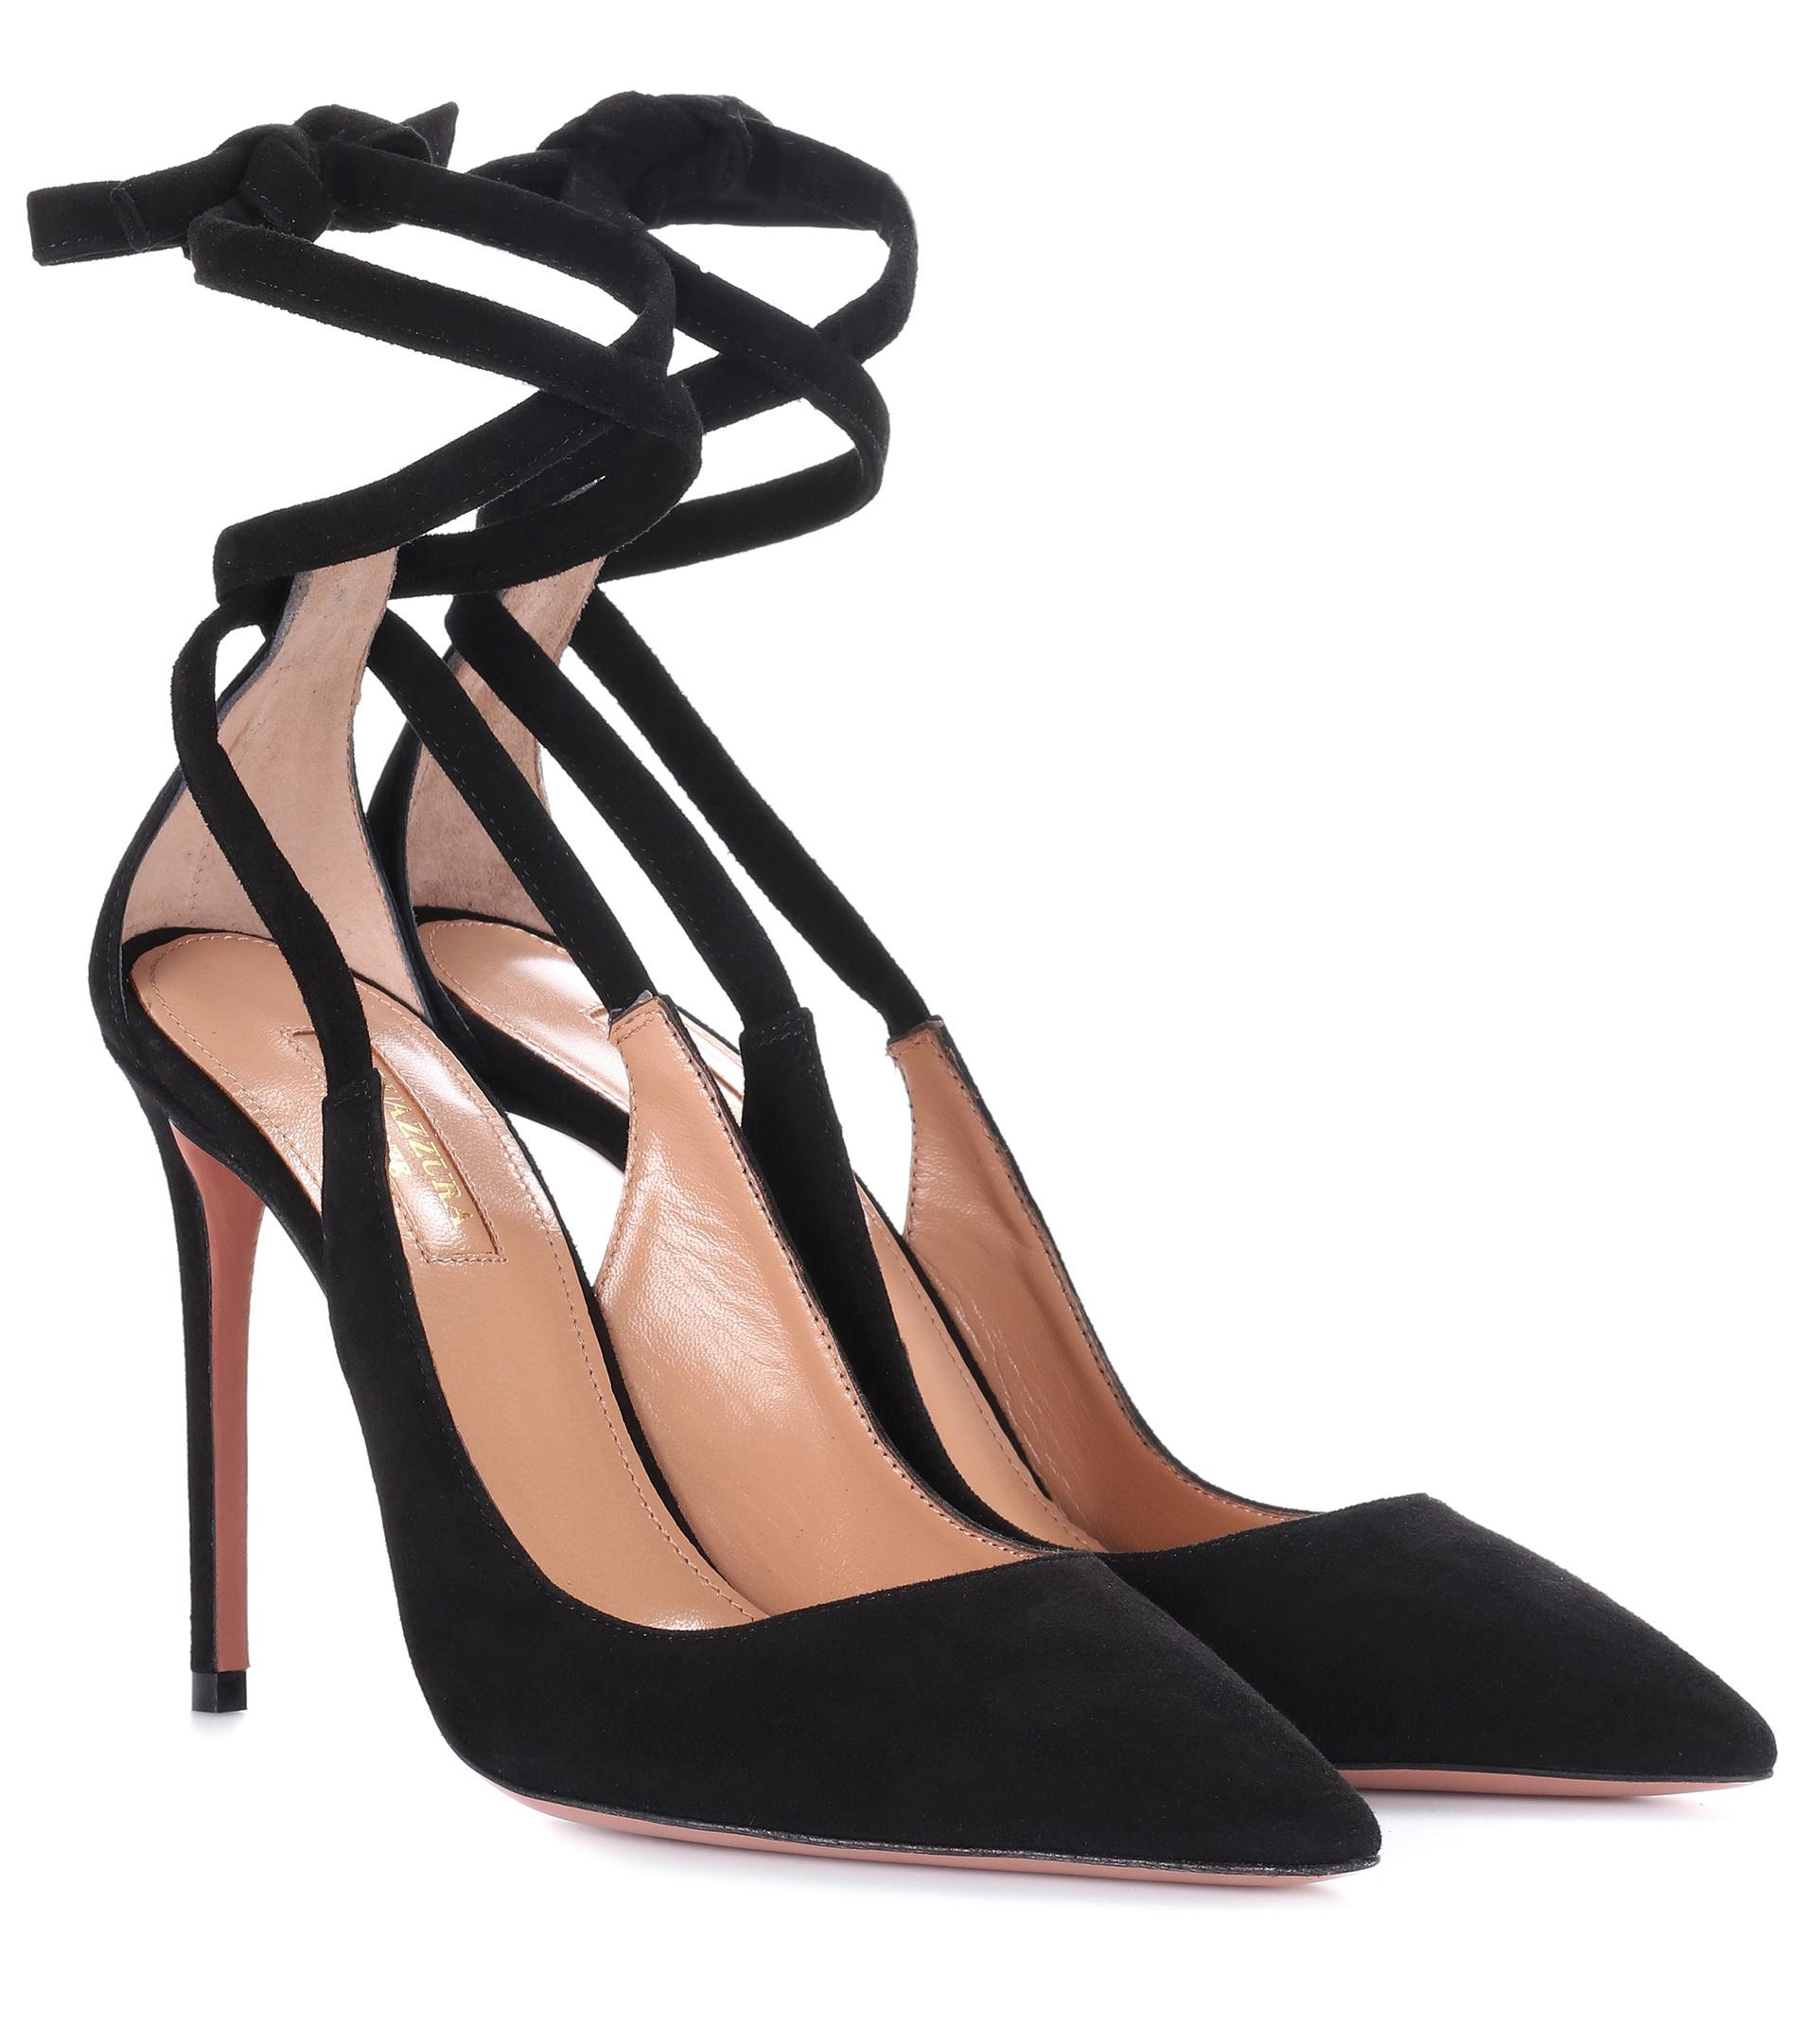 Milano Cutout Suede Pumps - Black Aquazzura K3Zasc